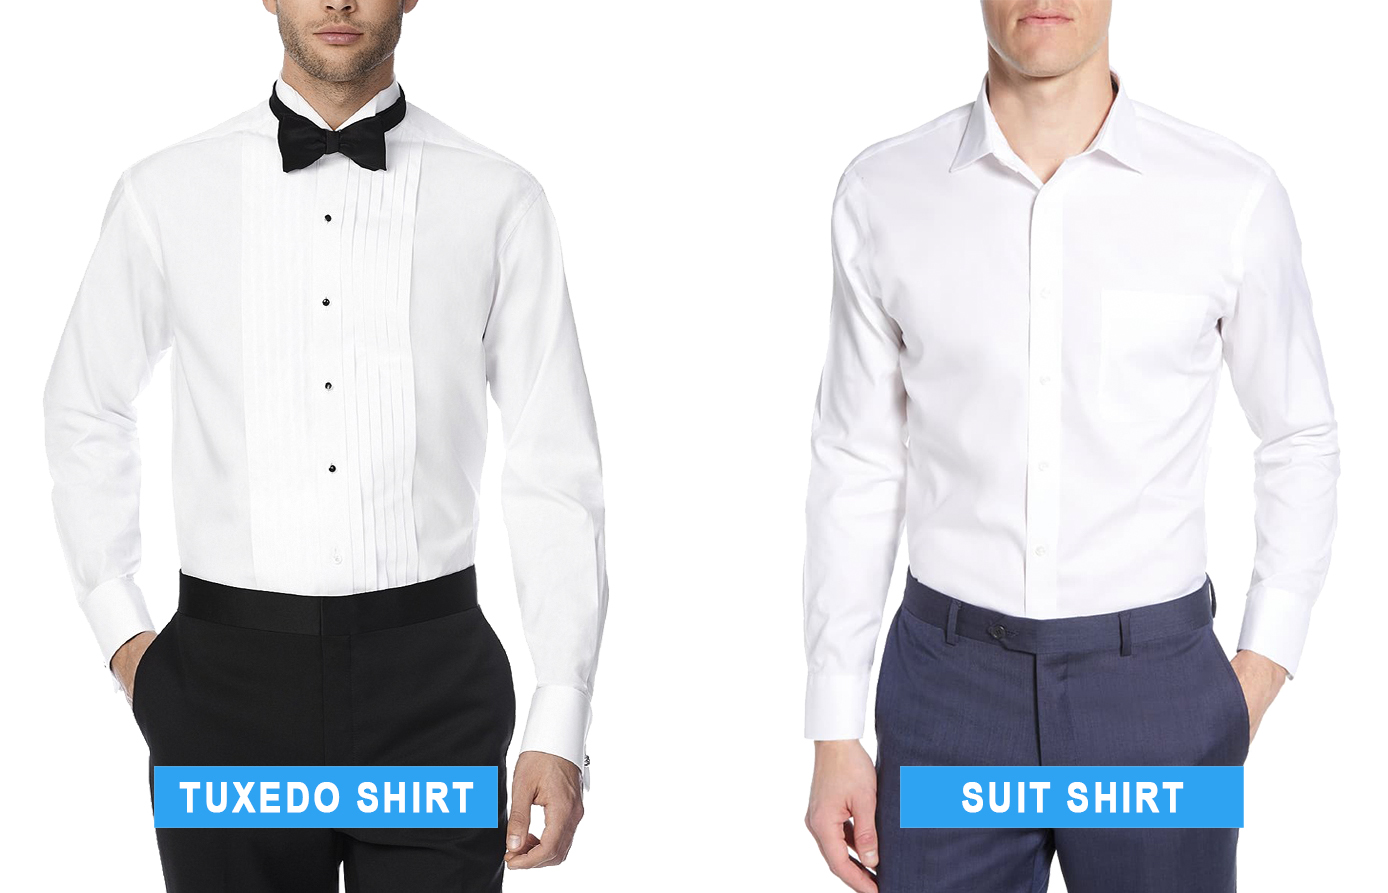 tuxedo shirt vs. dress shirt for a suit